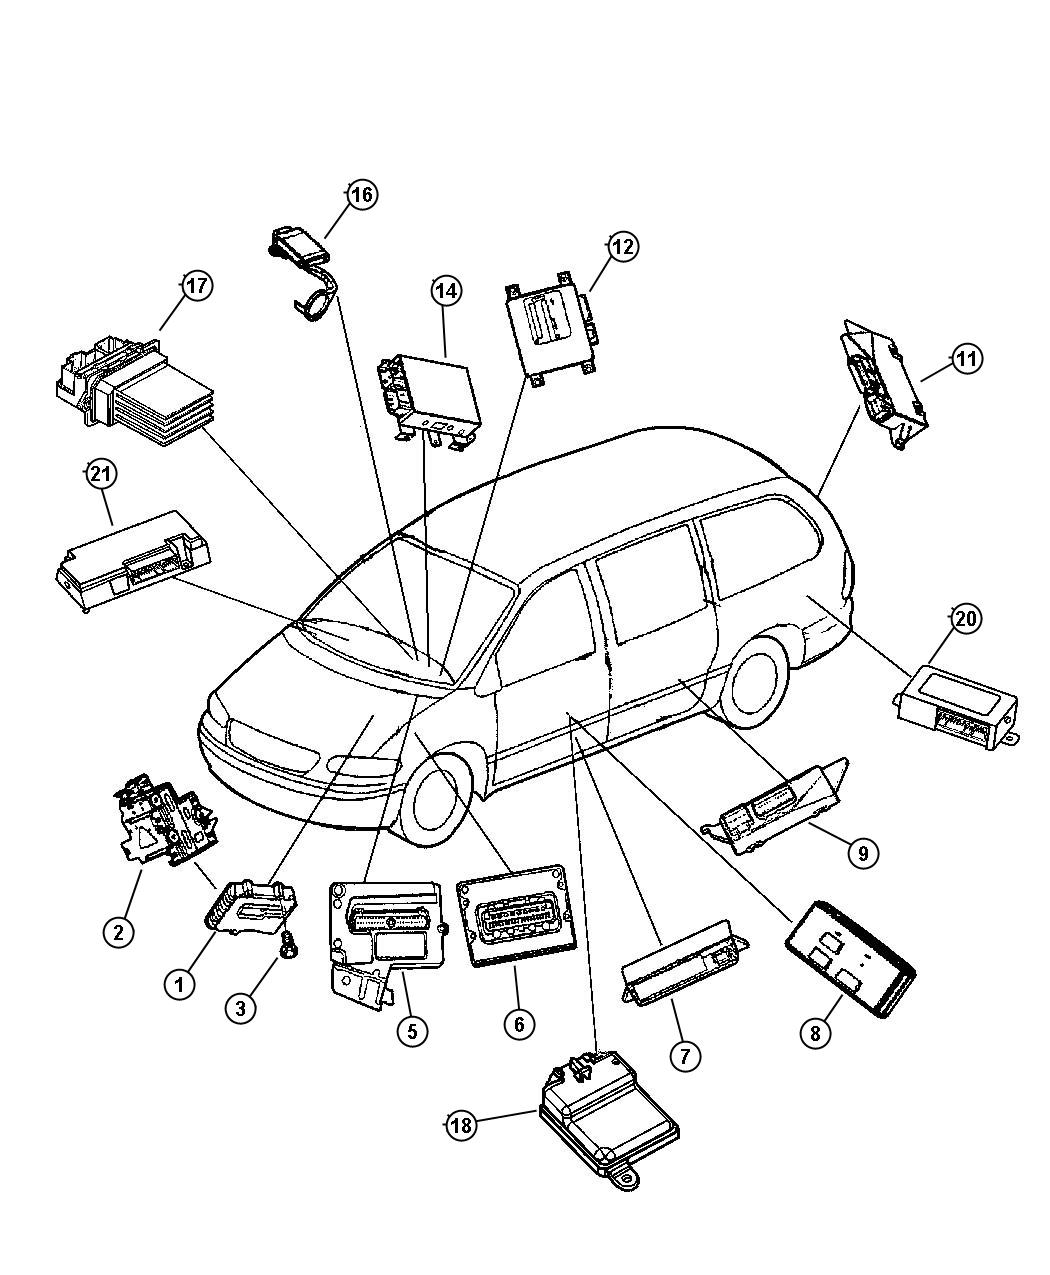 2005 Dodge Caravan Parts Diagram, 2005, Get Free Image